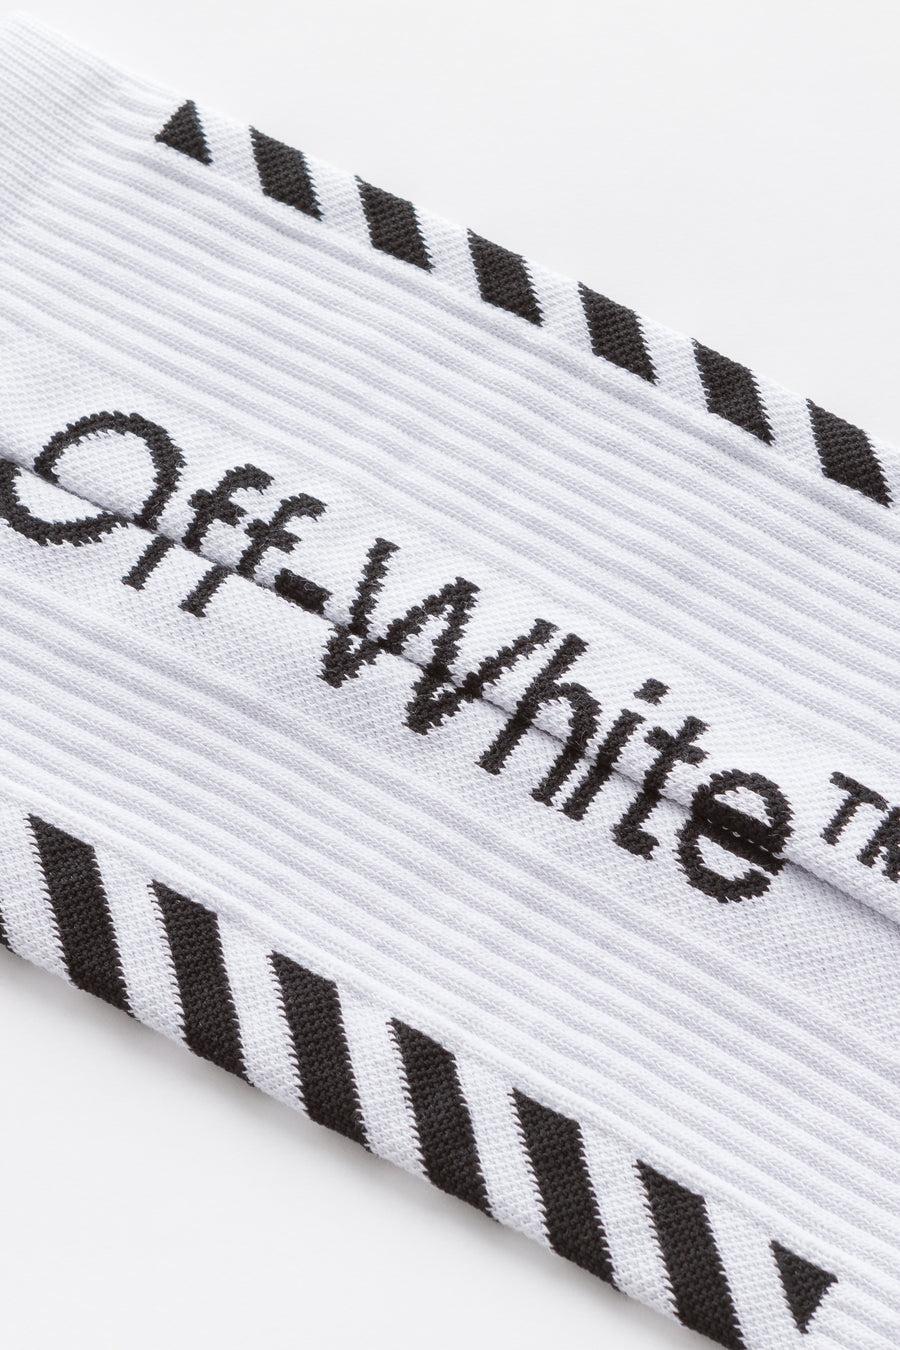 Off-White Diag Mid Length Socks in White/Black - Notre